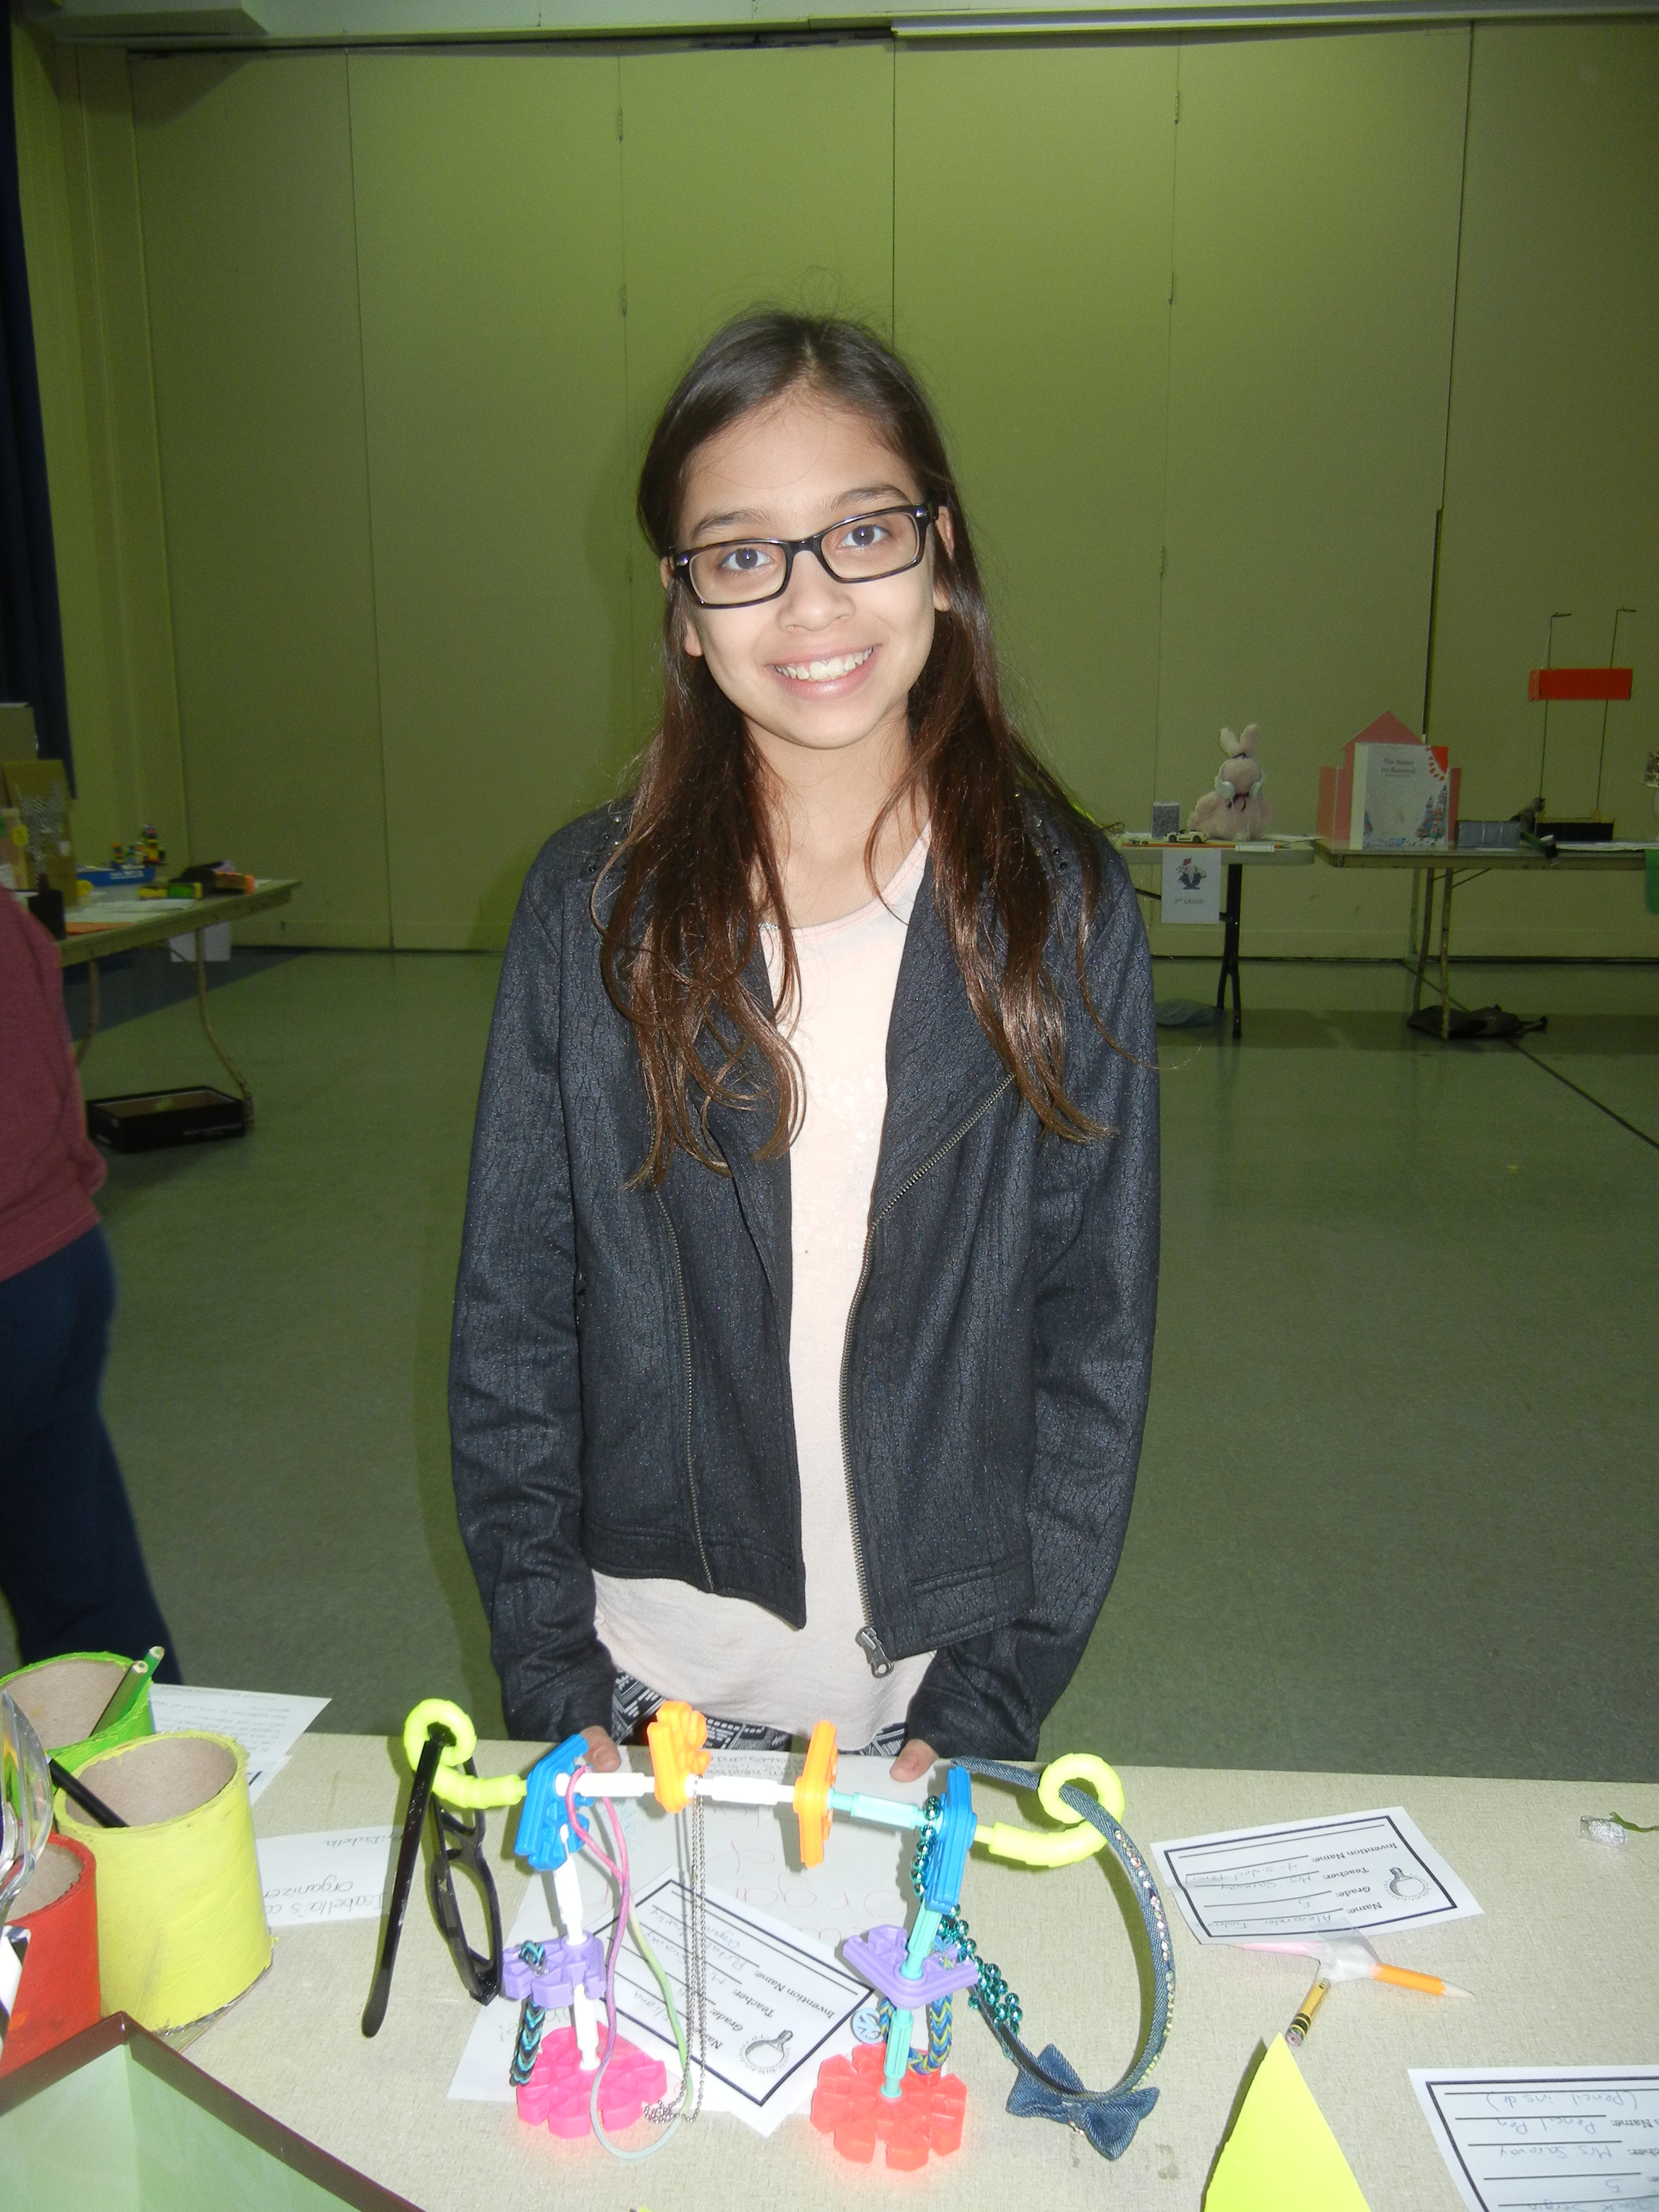 639d8915bf8d146a8915_invention_convention_049.JPG